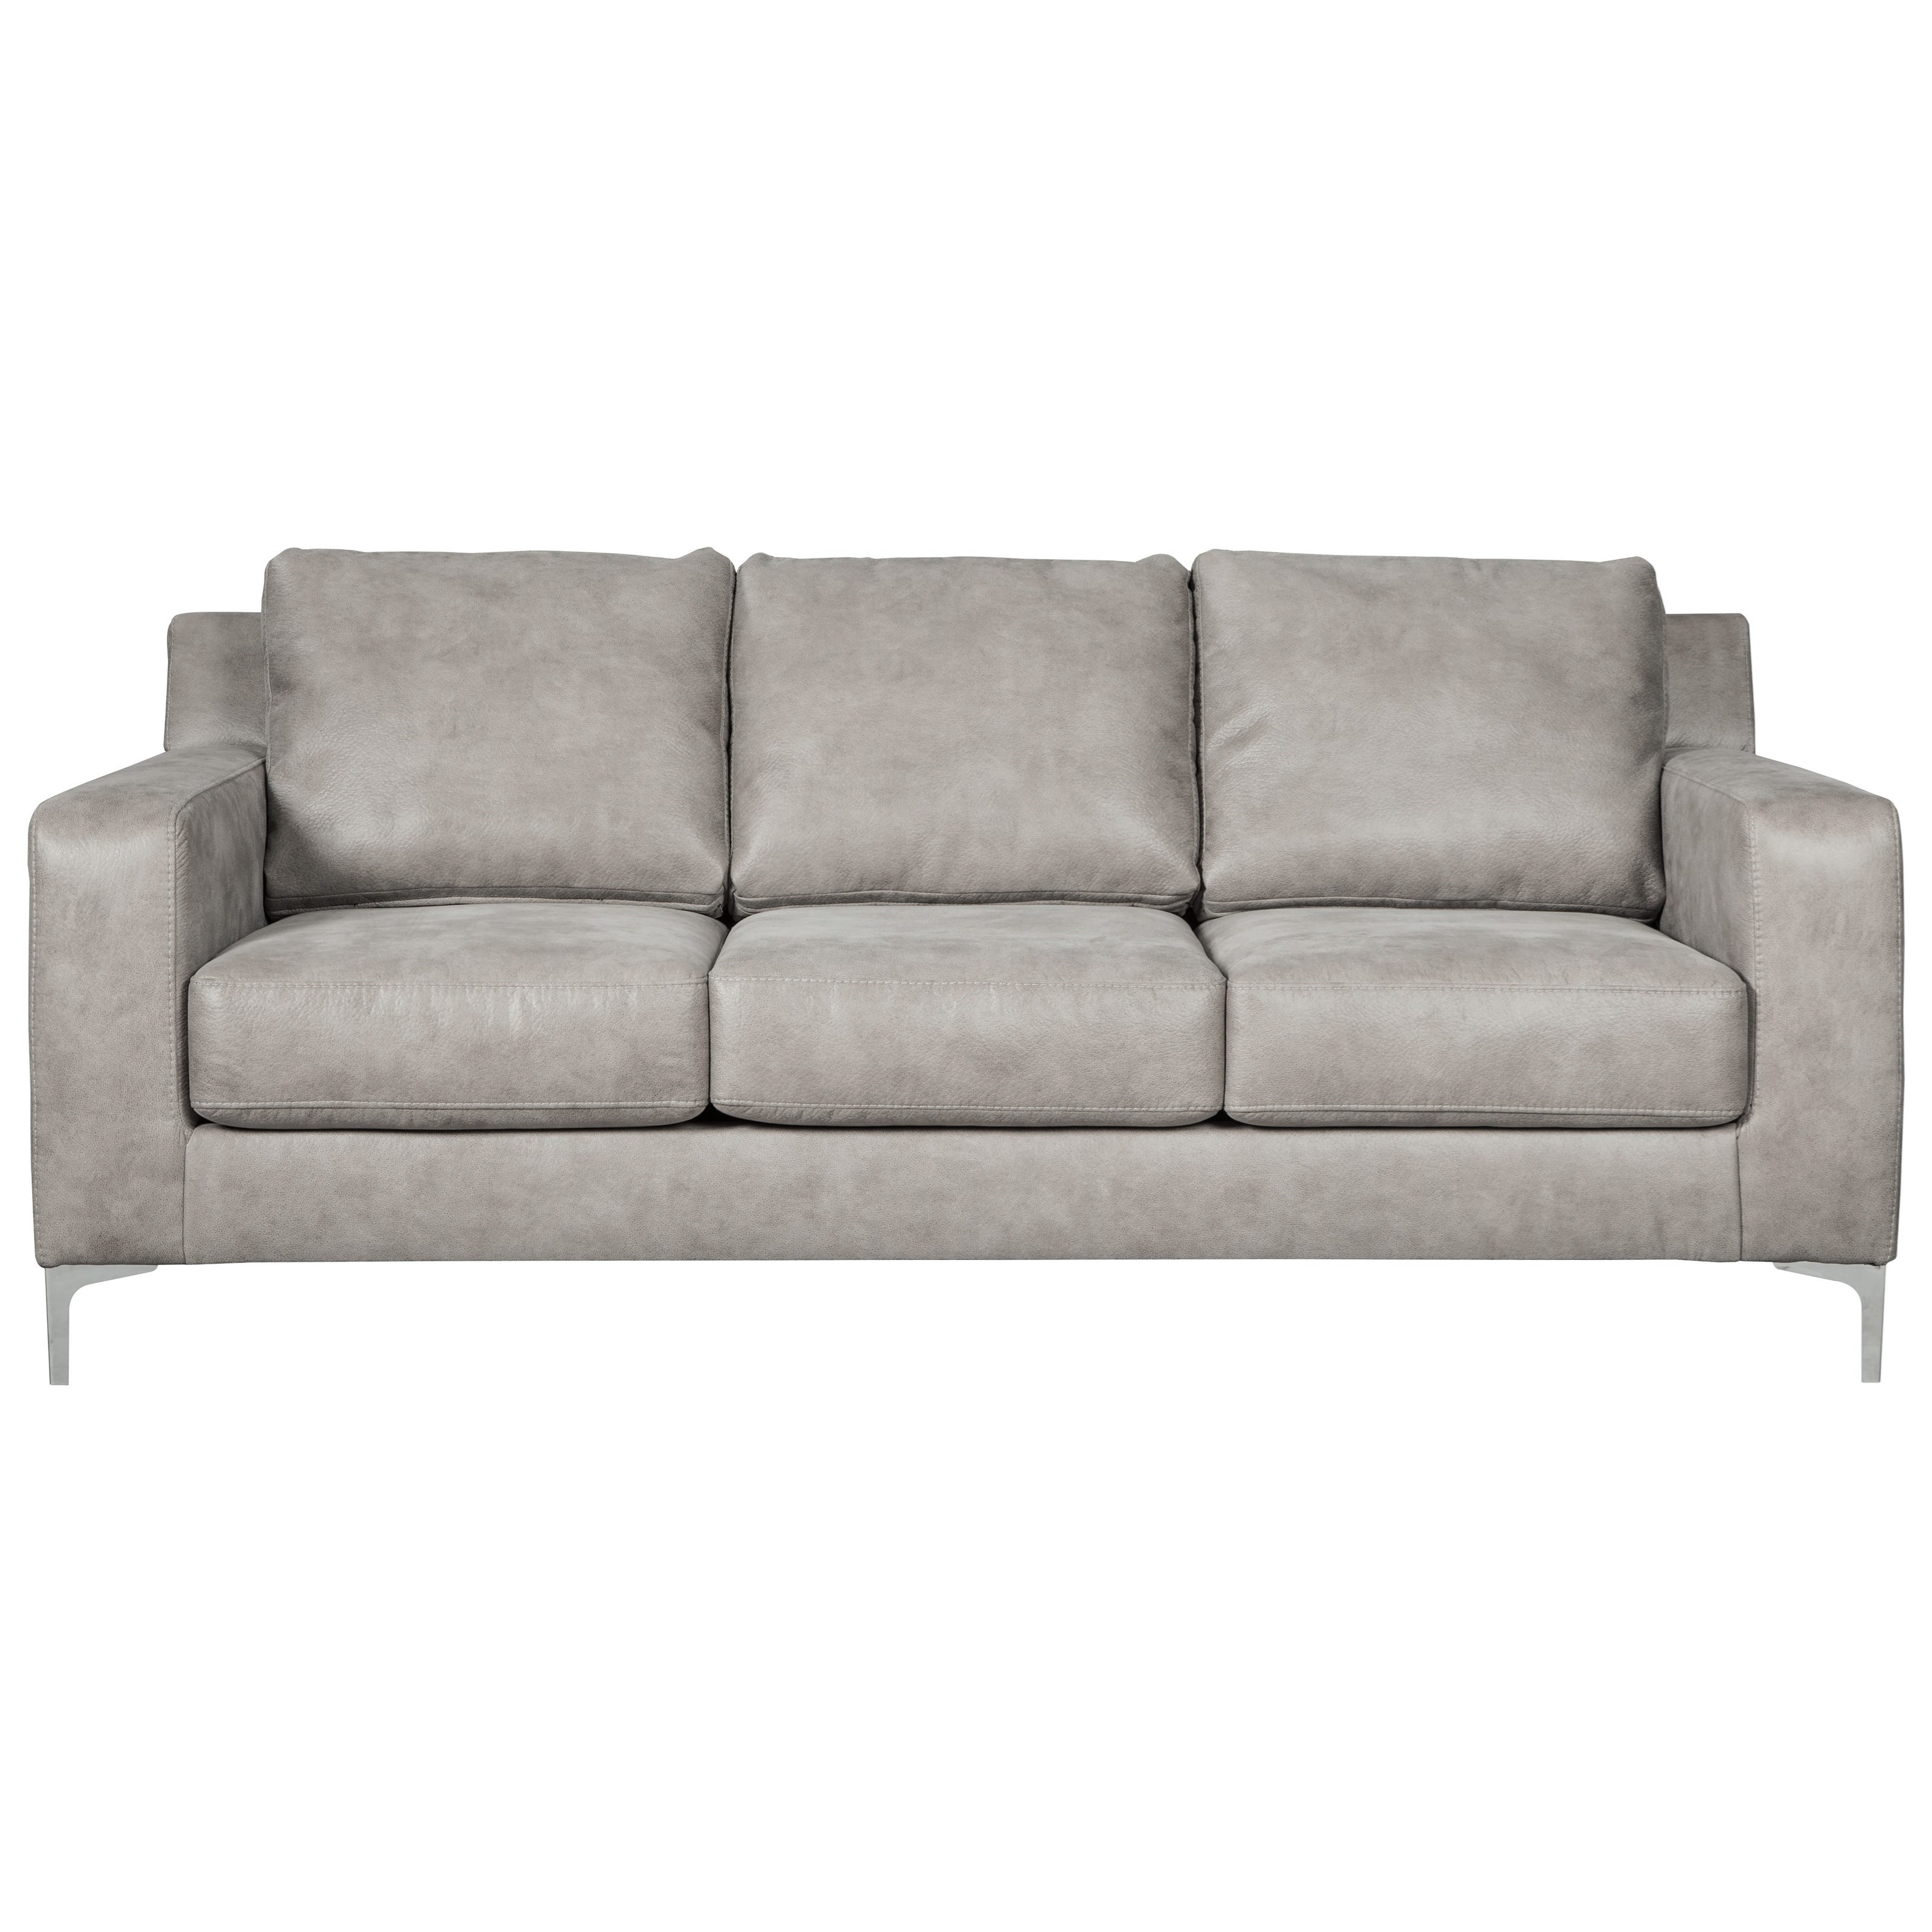 "Ashley Furniture Sofas: Signature Design By Ashley Ryler 85"" Contemporary Sofa"